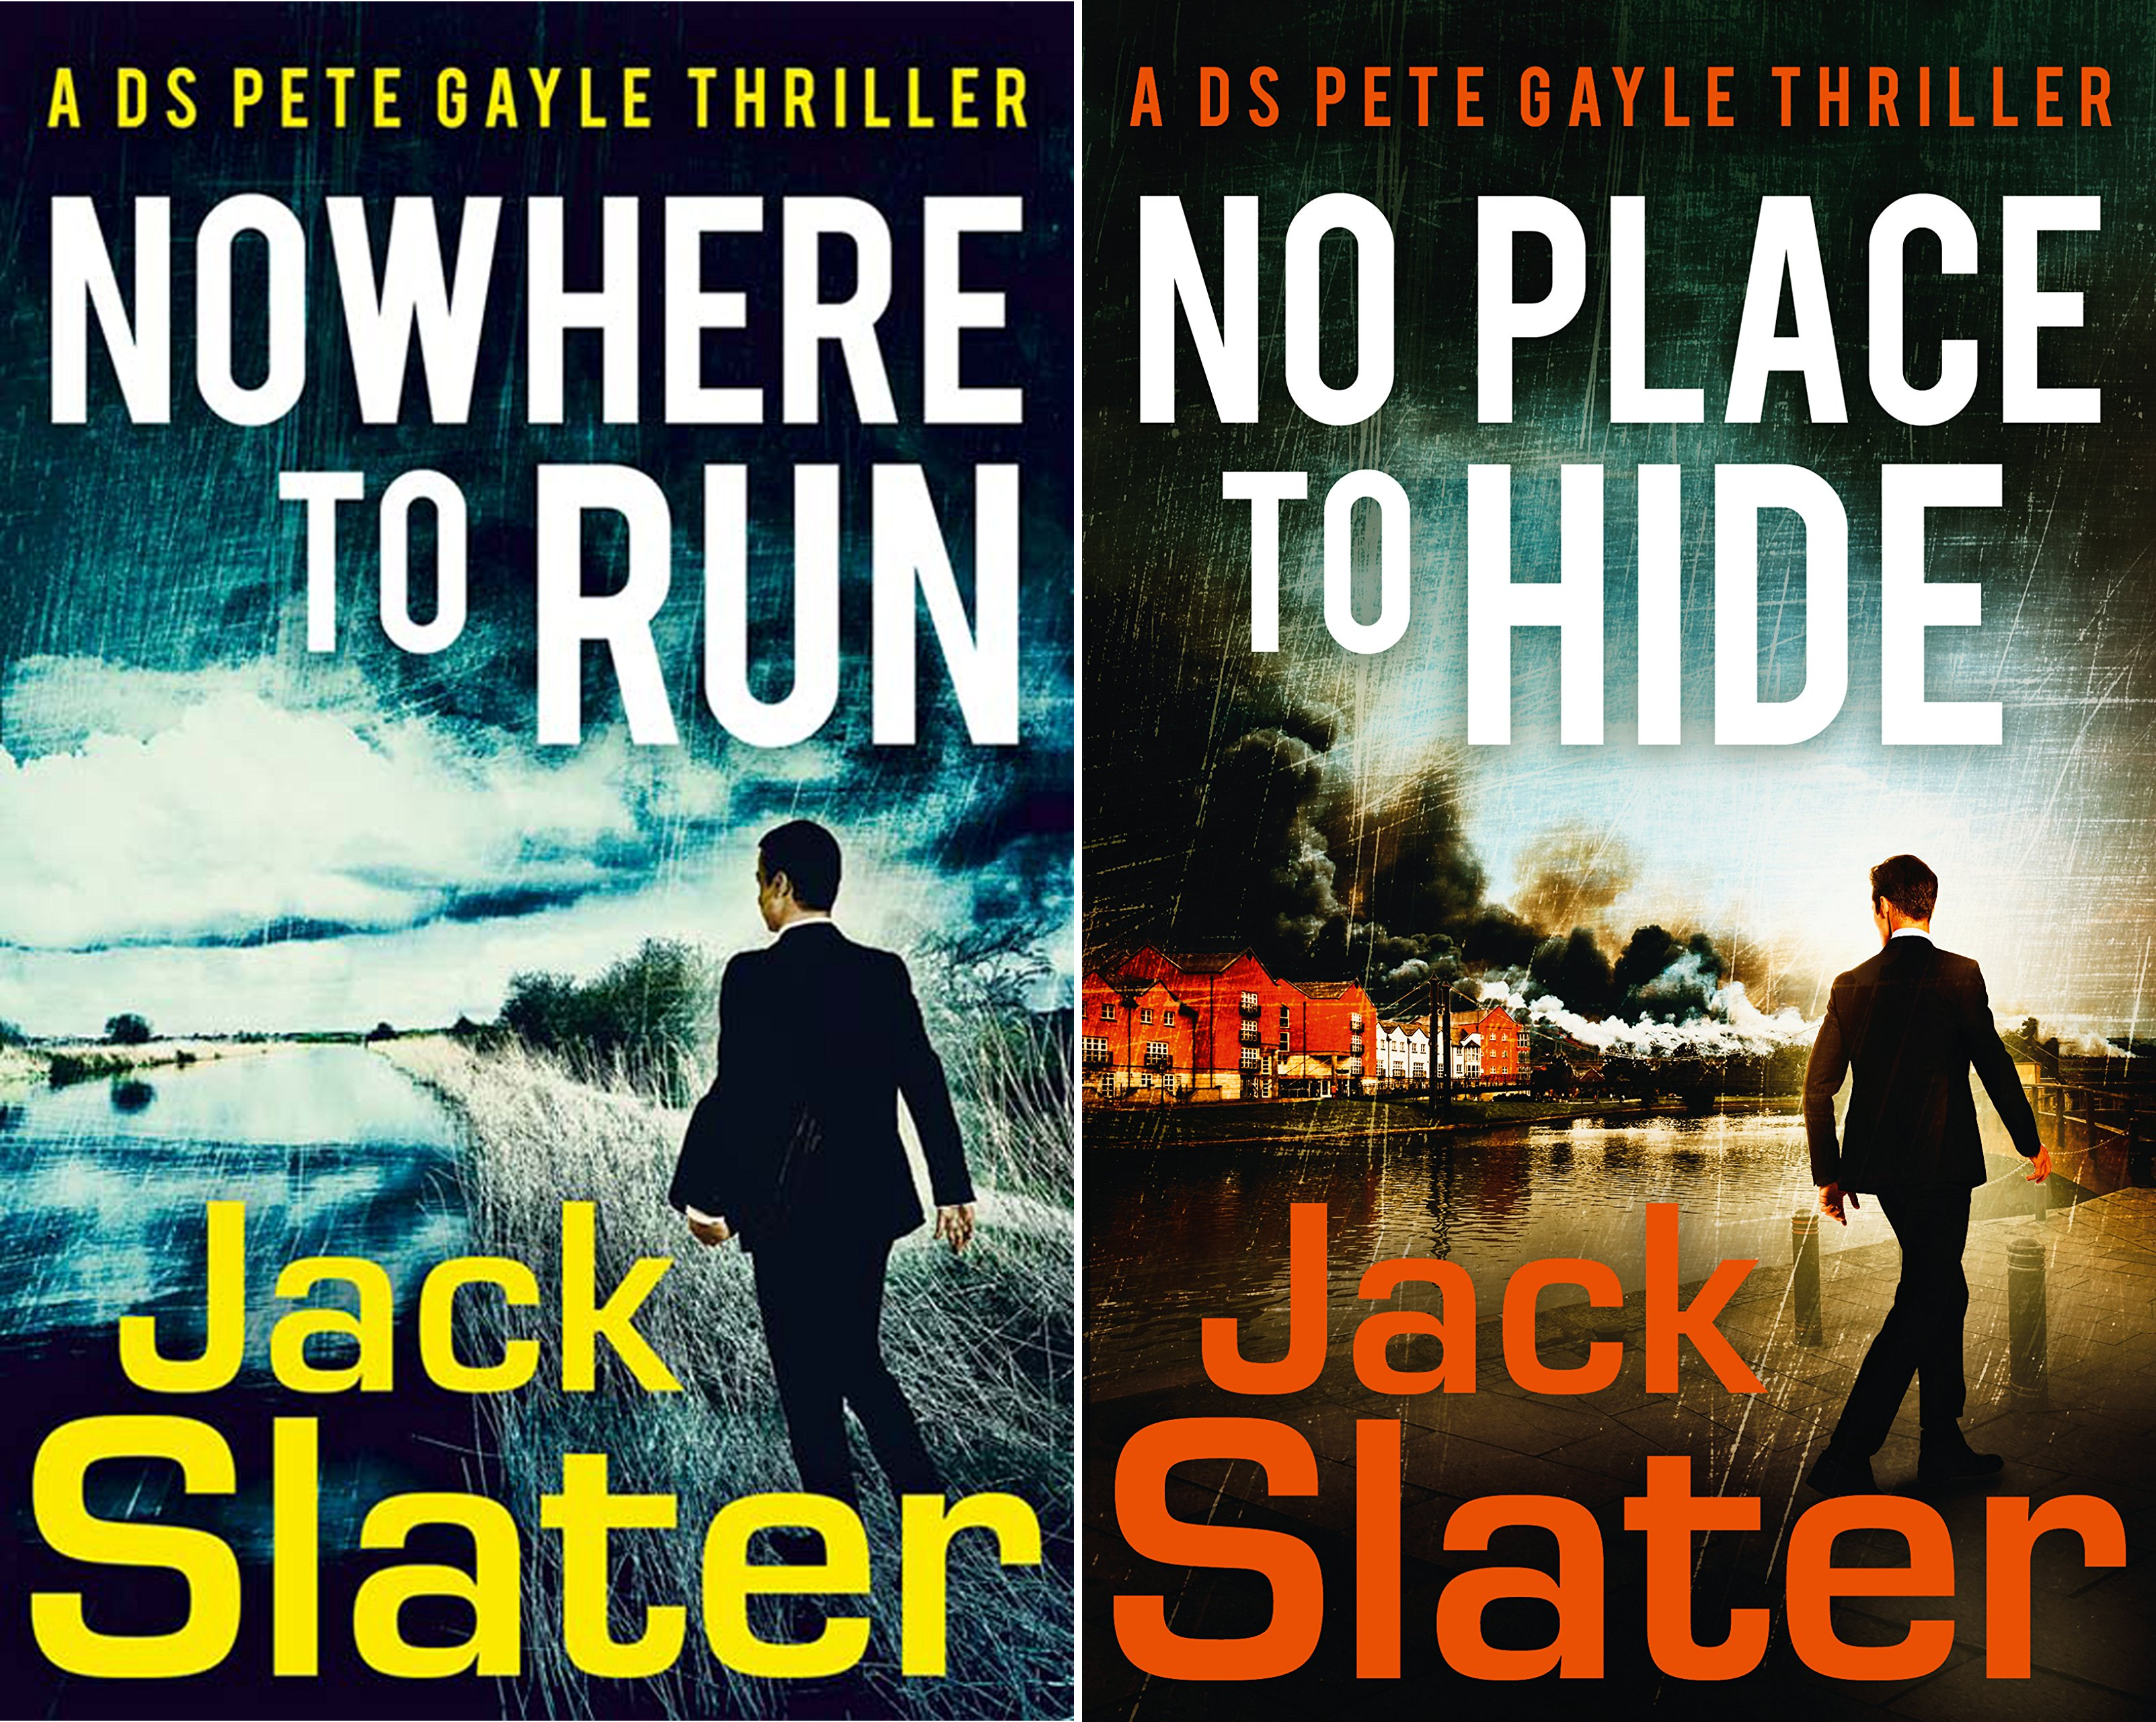 DS Peter Gayle Thriller Series (3 Book Series)